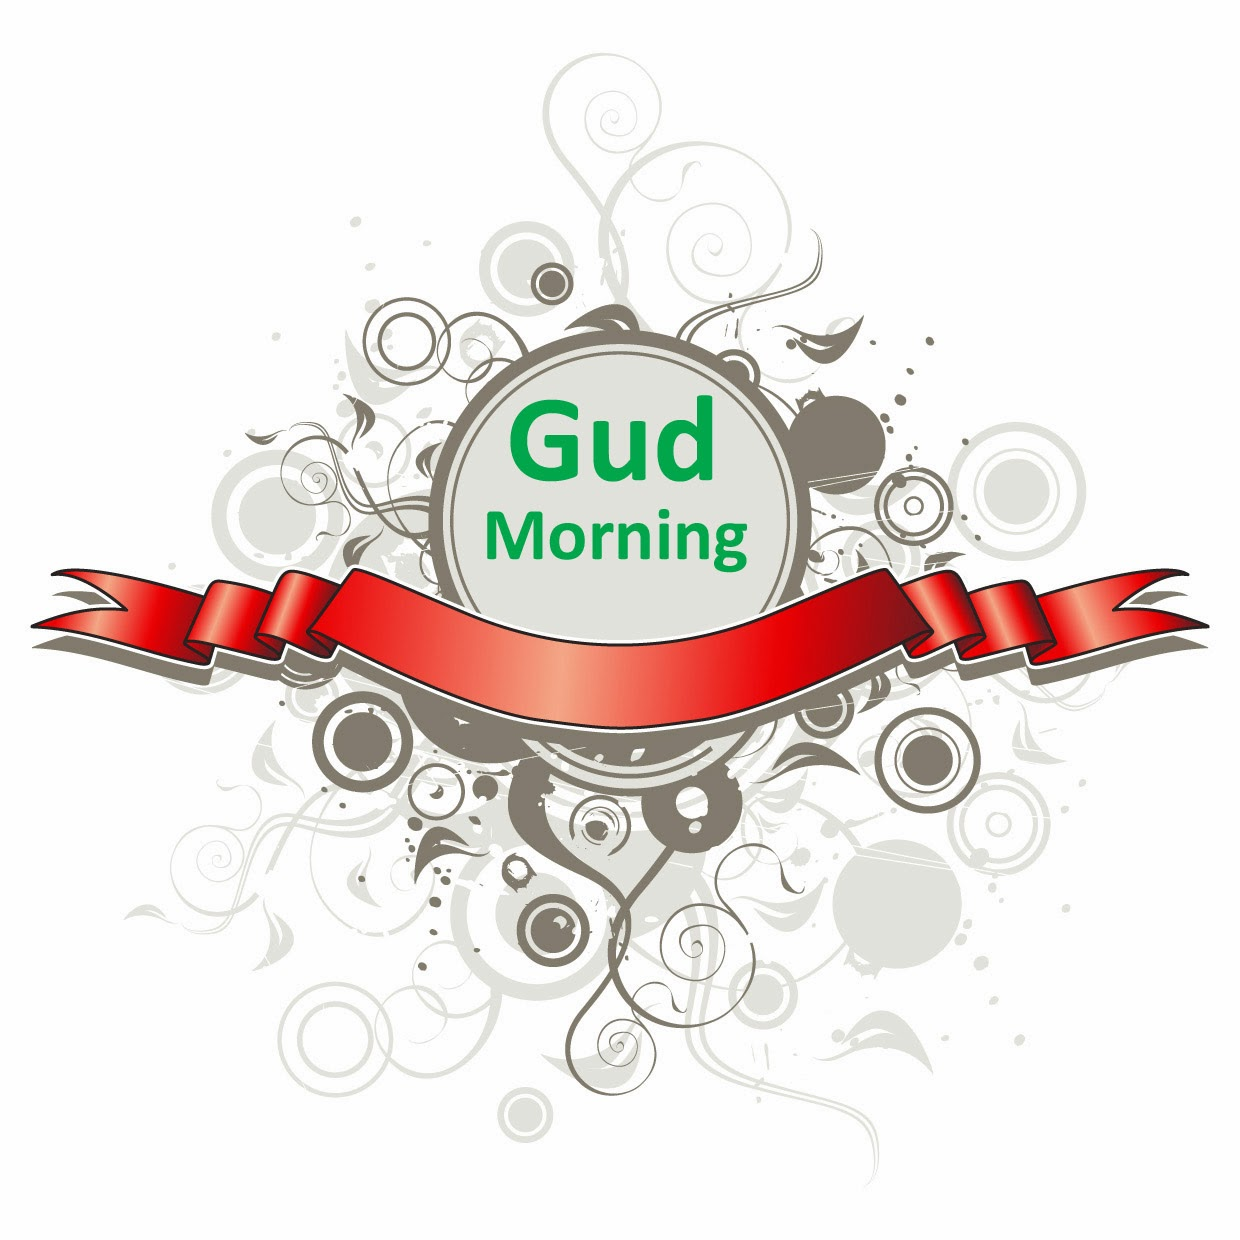 Lovable images good morning wishes greetings images free download good morning wishes greetings images free download beautiful gud morning wallpapers free download free good morning pictures m4hsunfo